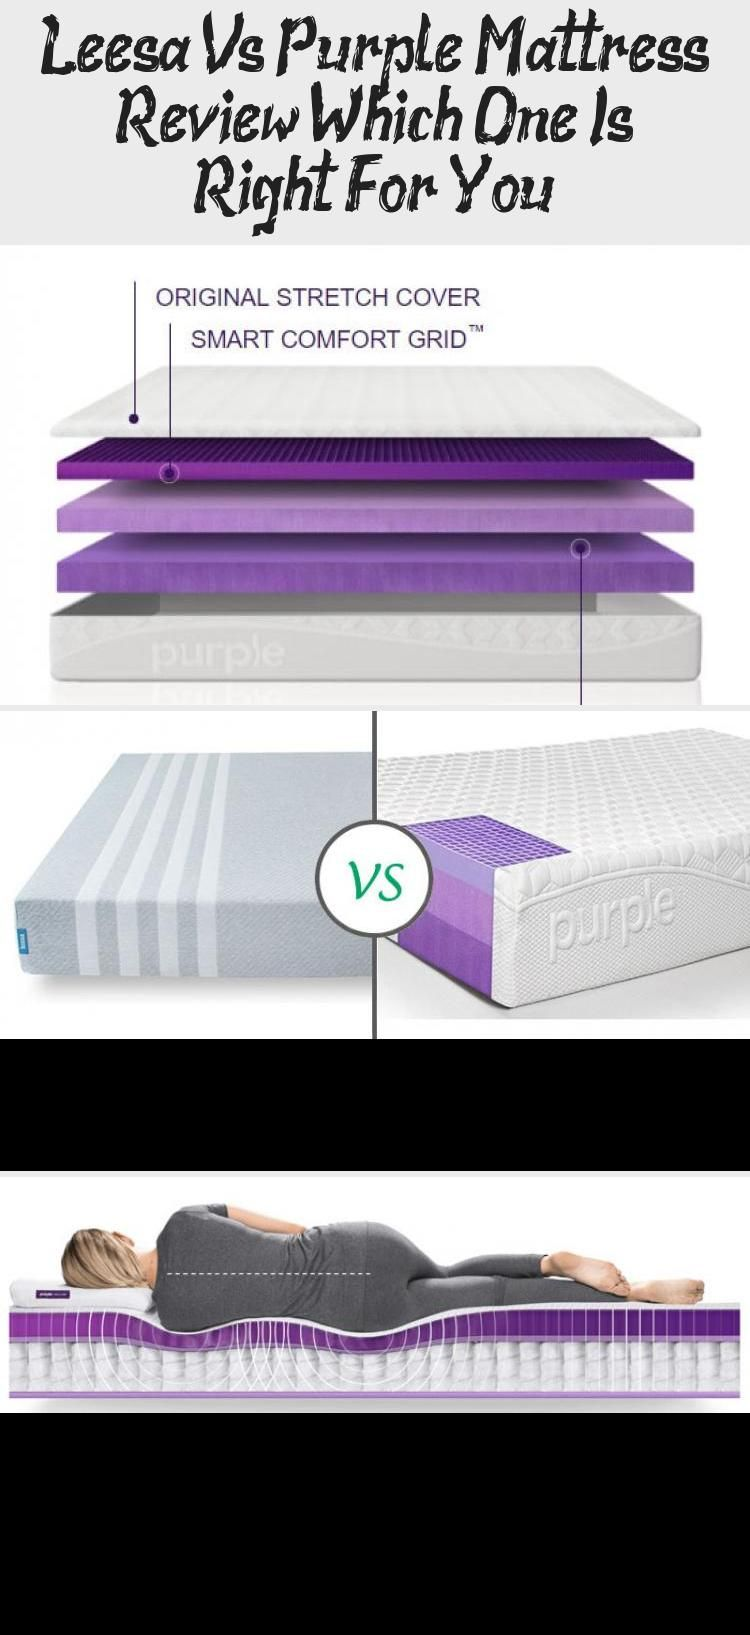 A Leesa Vs Purple Mattress Review Compares Both Mattresses For Differences We Spotted Very Few Pu In 2020 Purple Mattress Purple Mattress Reviews Mattresses Reviews